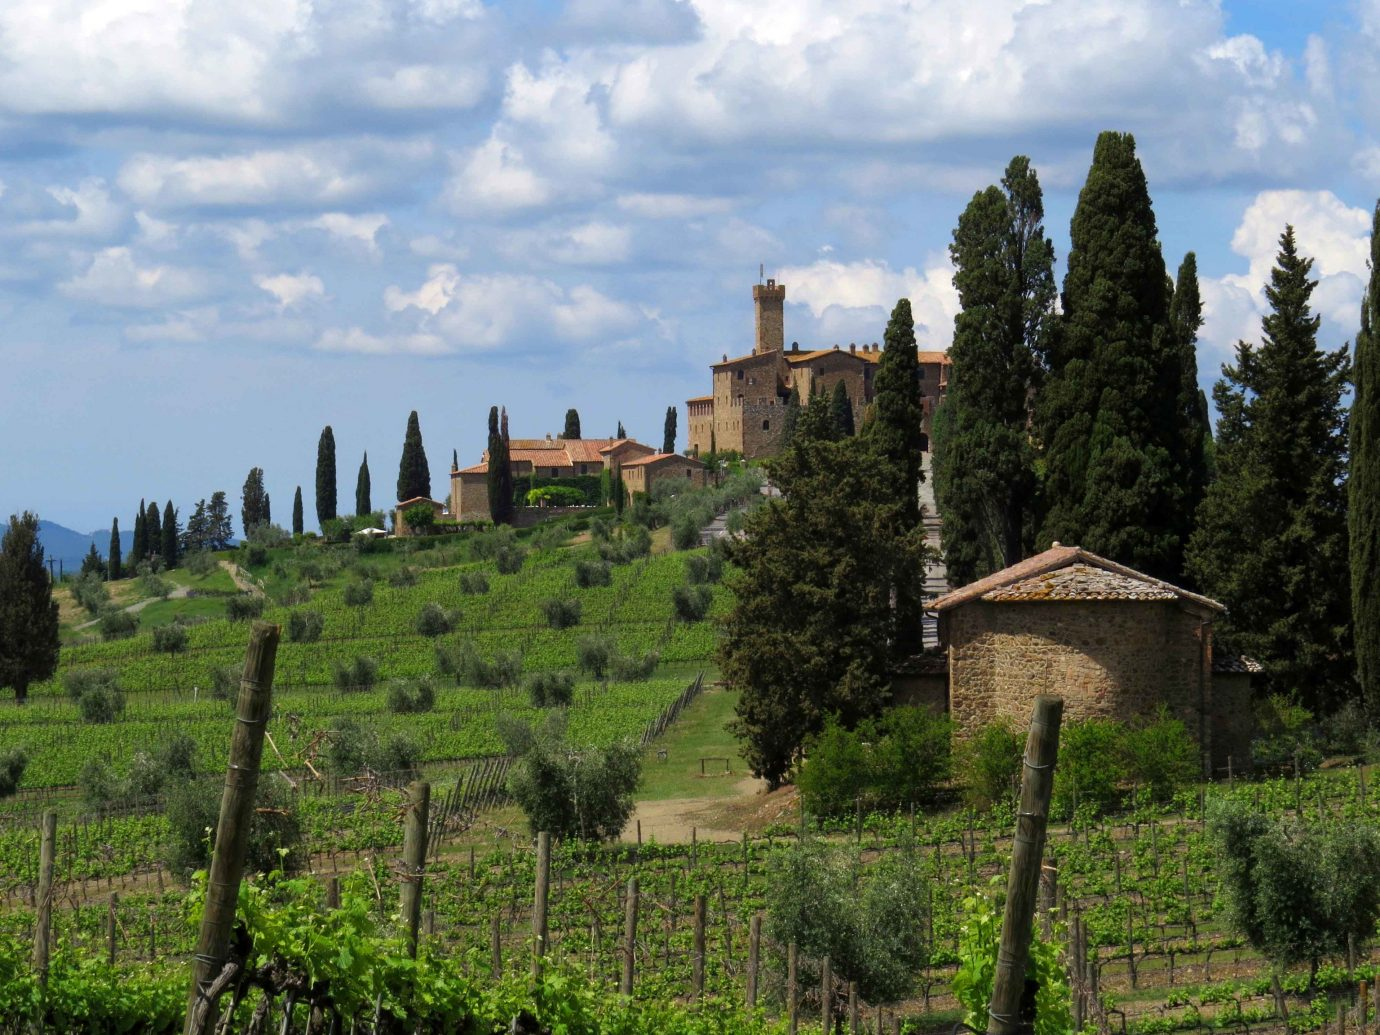 europe Hotels Italy Romance sky vegetation Village field tree rural area agriculture Vineyard hill biome grass landscape mountain grassland shrubland cloud escarpment estate historic site meadow mount scenery